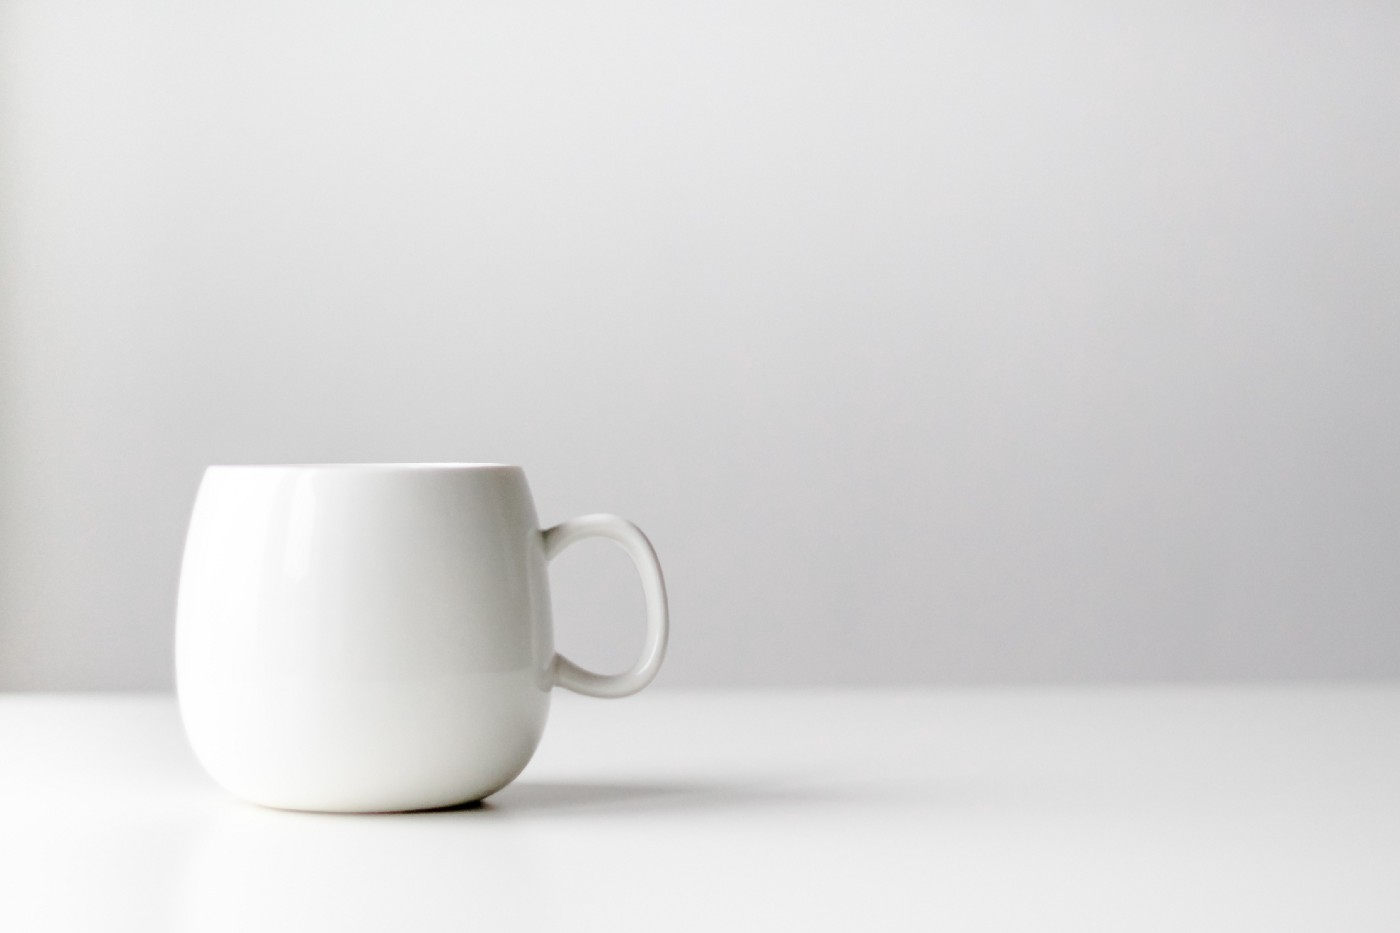 A plain white, seemingly unimportant, coffee mug sits alone on a white table.